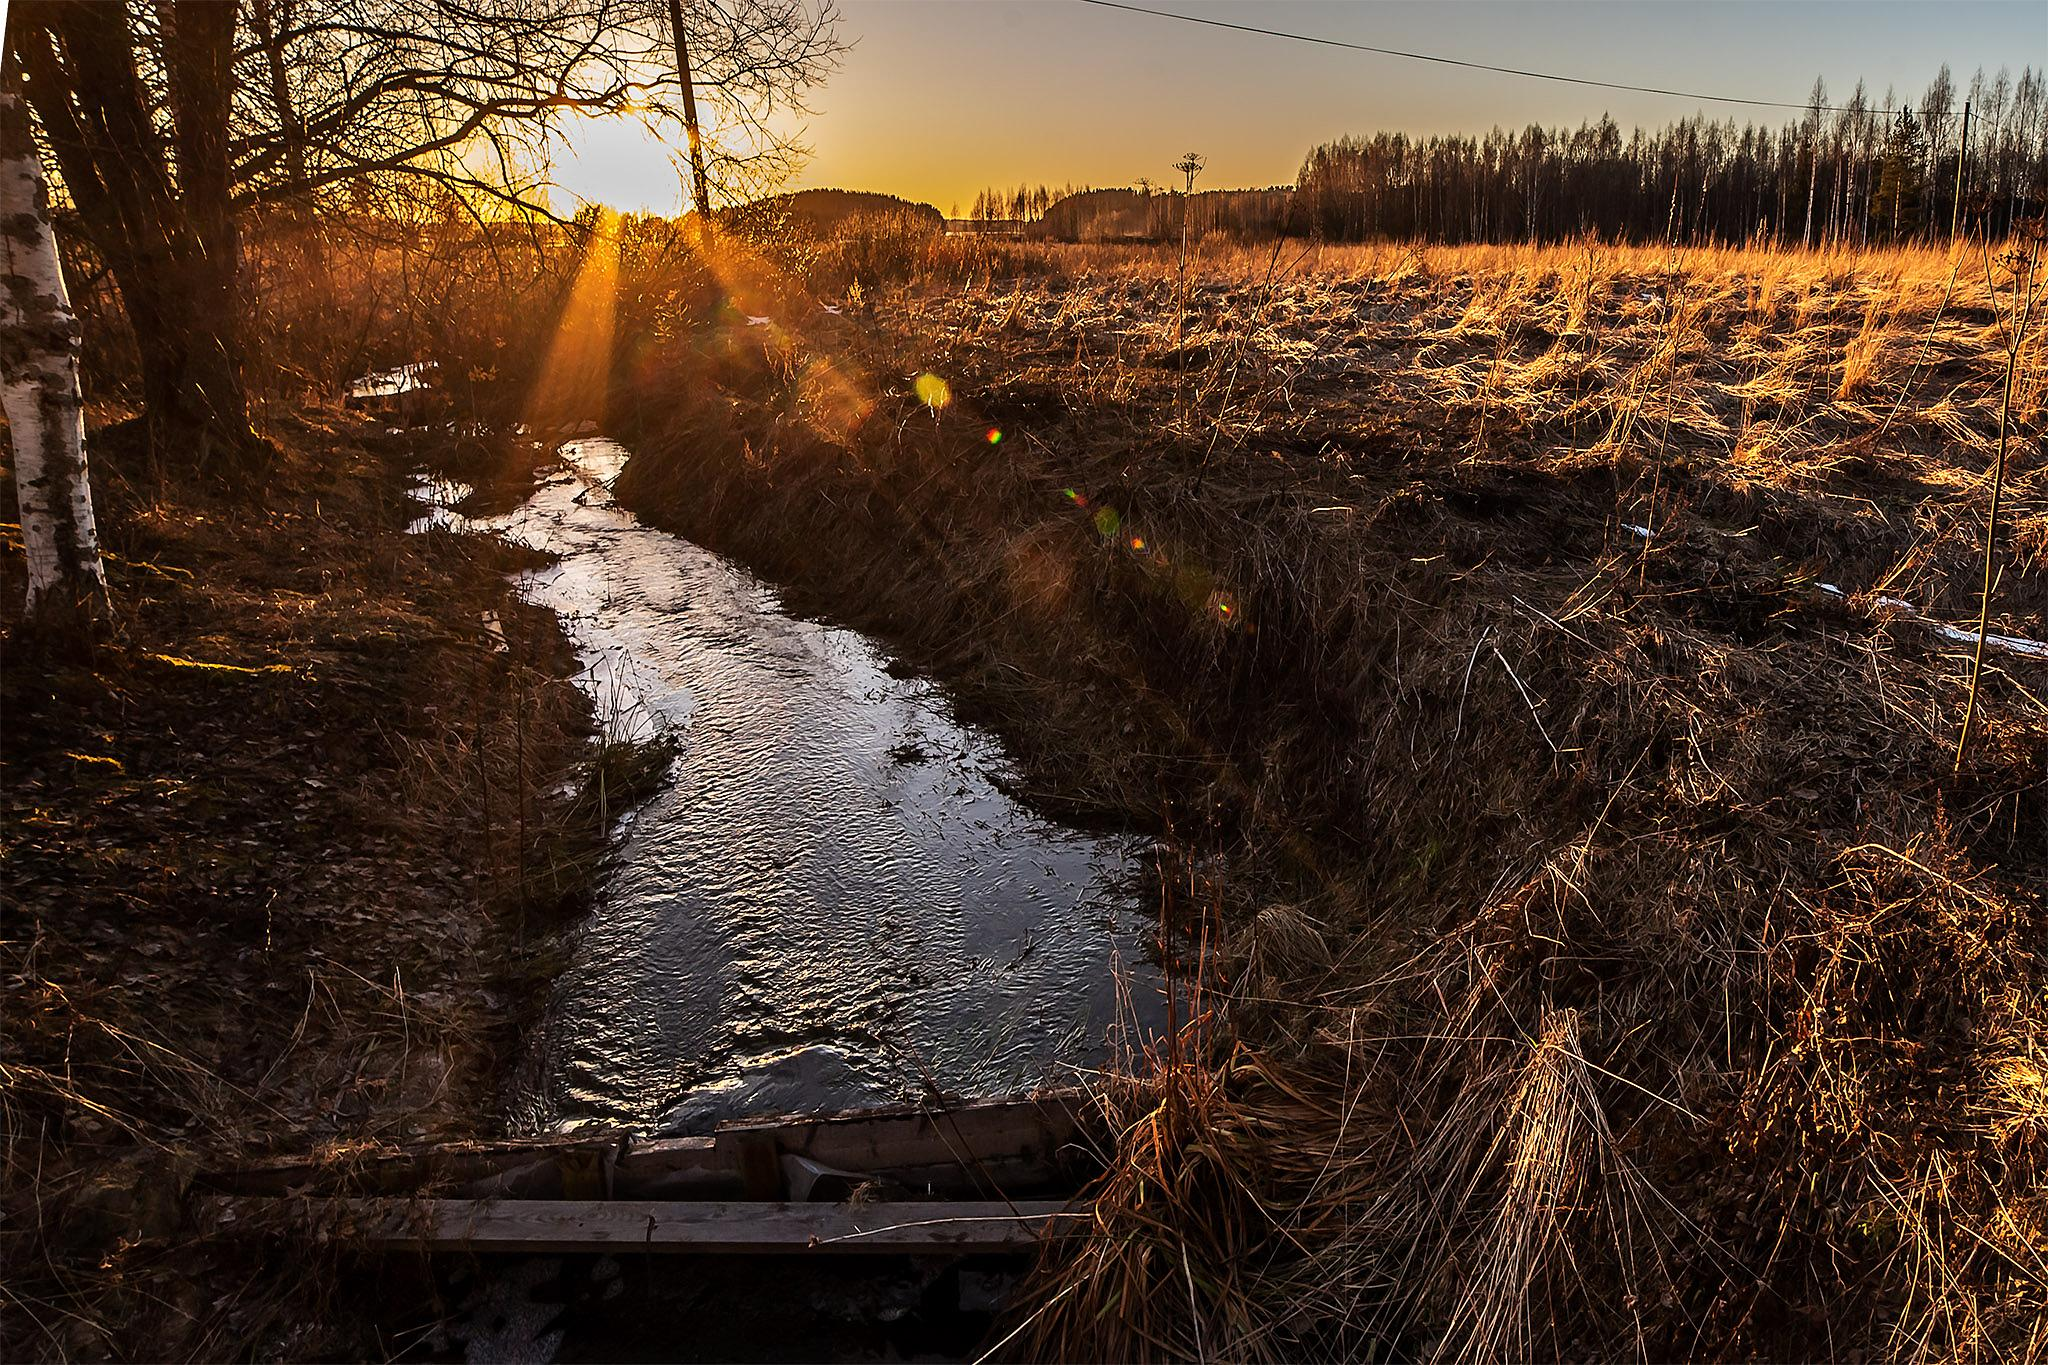 Ditch by evening by Harri Hedman